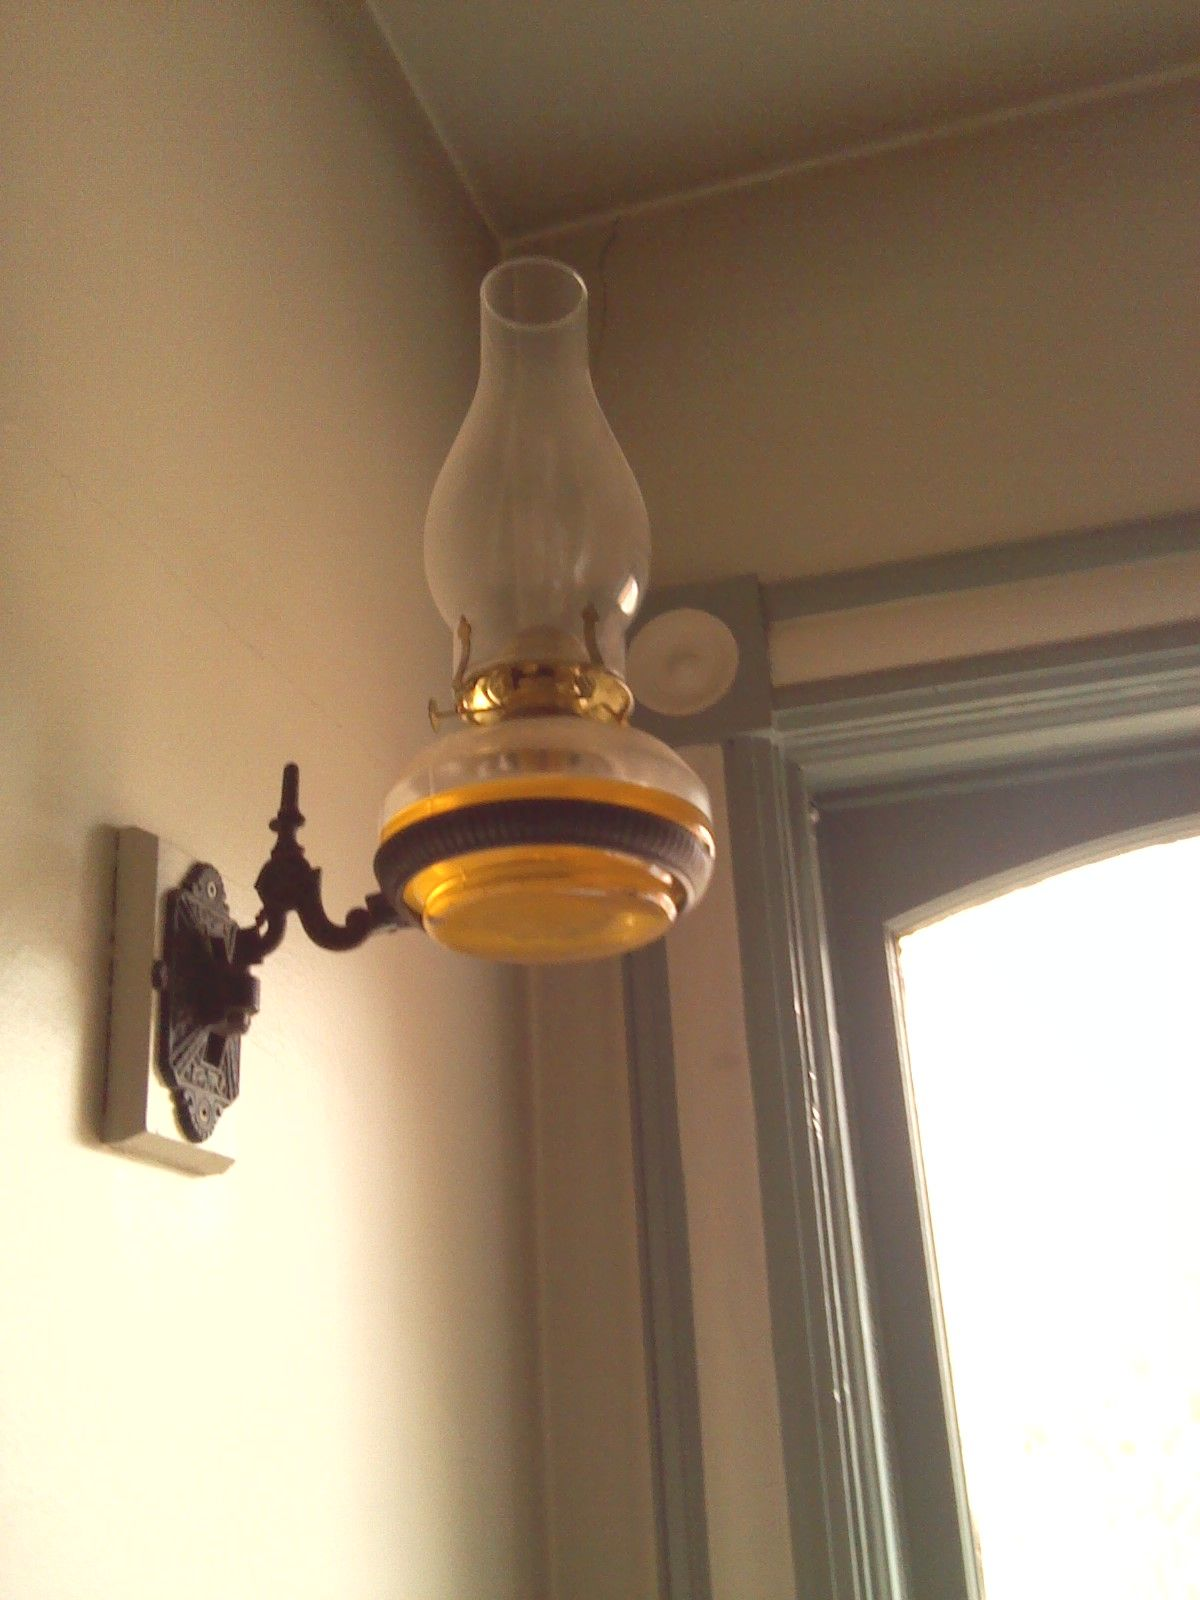 Wall Mounted Kerosene Lanterns : Wall mounted oil lamp at Bronte Creek Oil lamps Pinterest